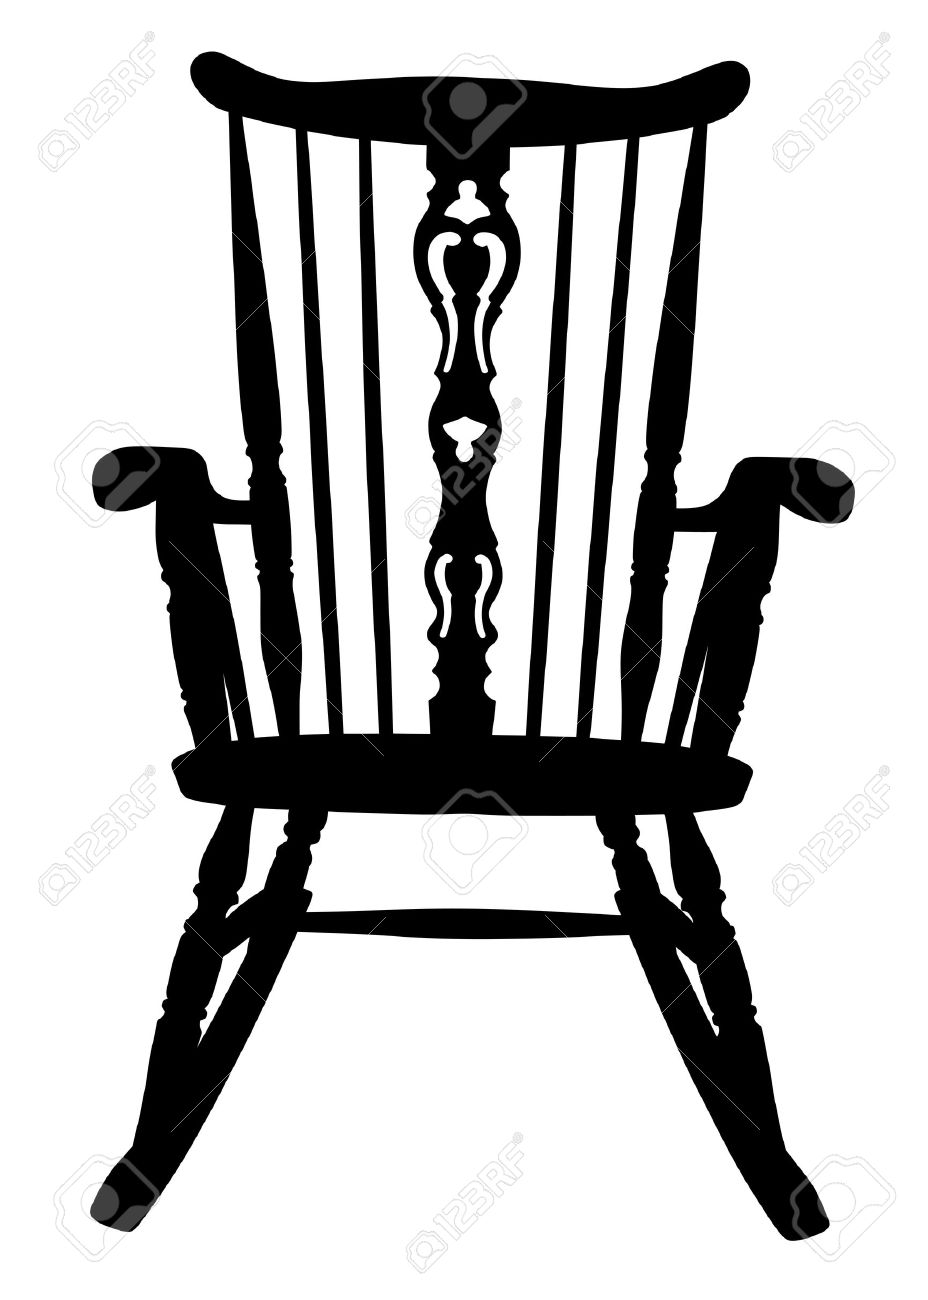 Vintage Rocking Chair Stencil Royalty Free Cliparts Vectors And